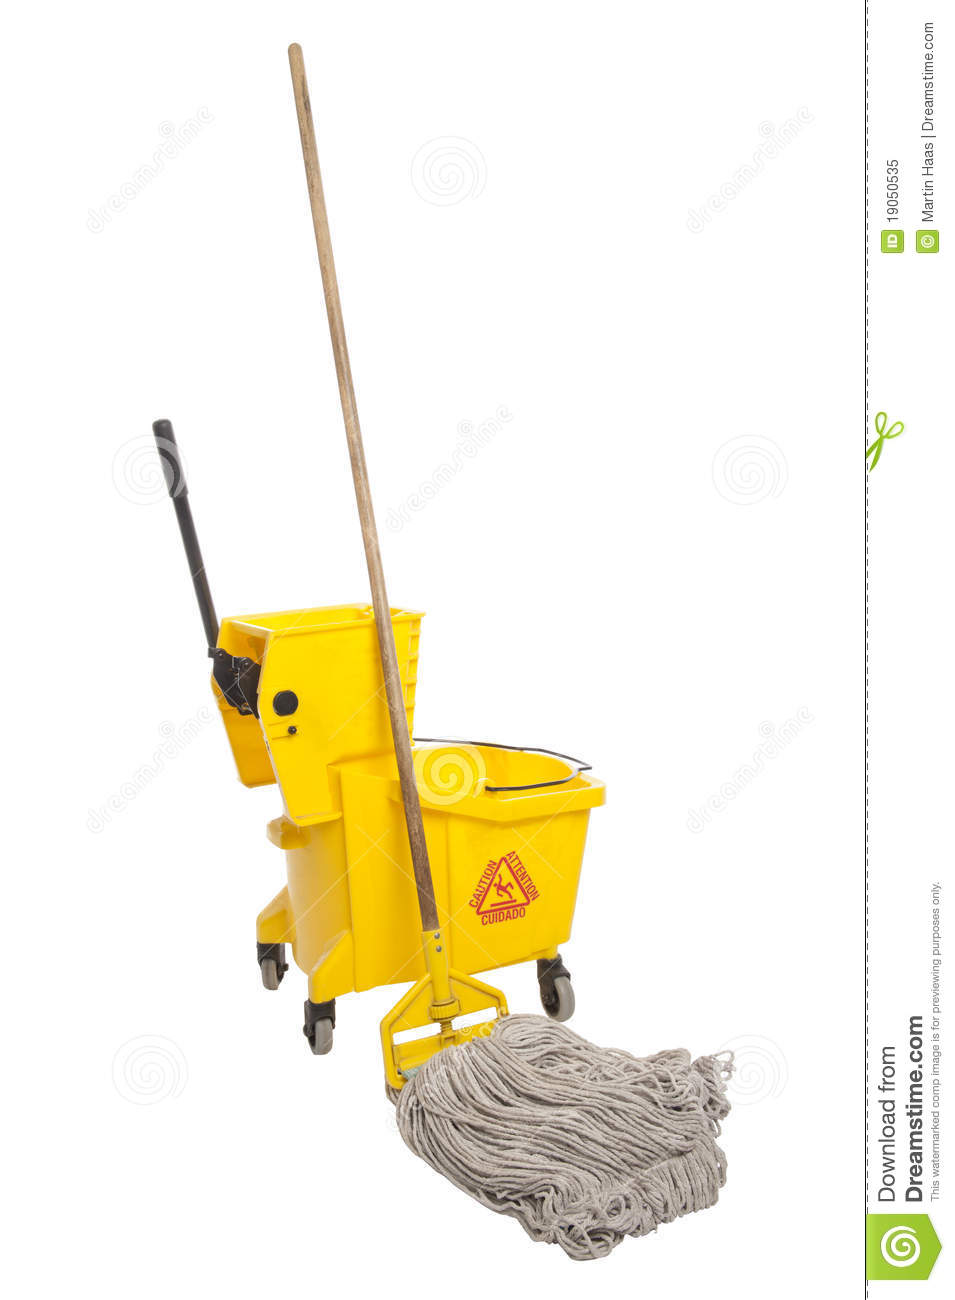 Industrial Mop And Bucket Stock Image Image Of Cleaning 19050535